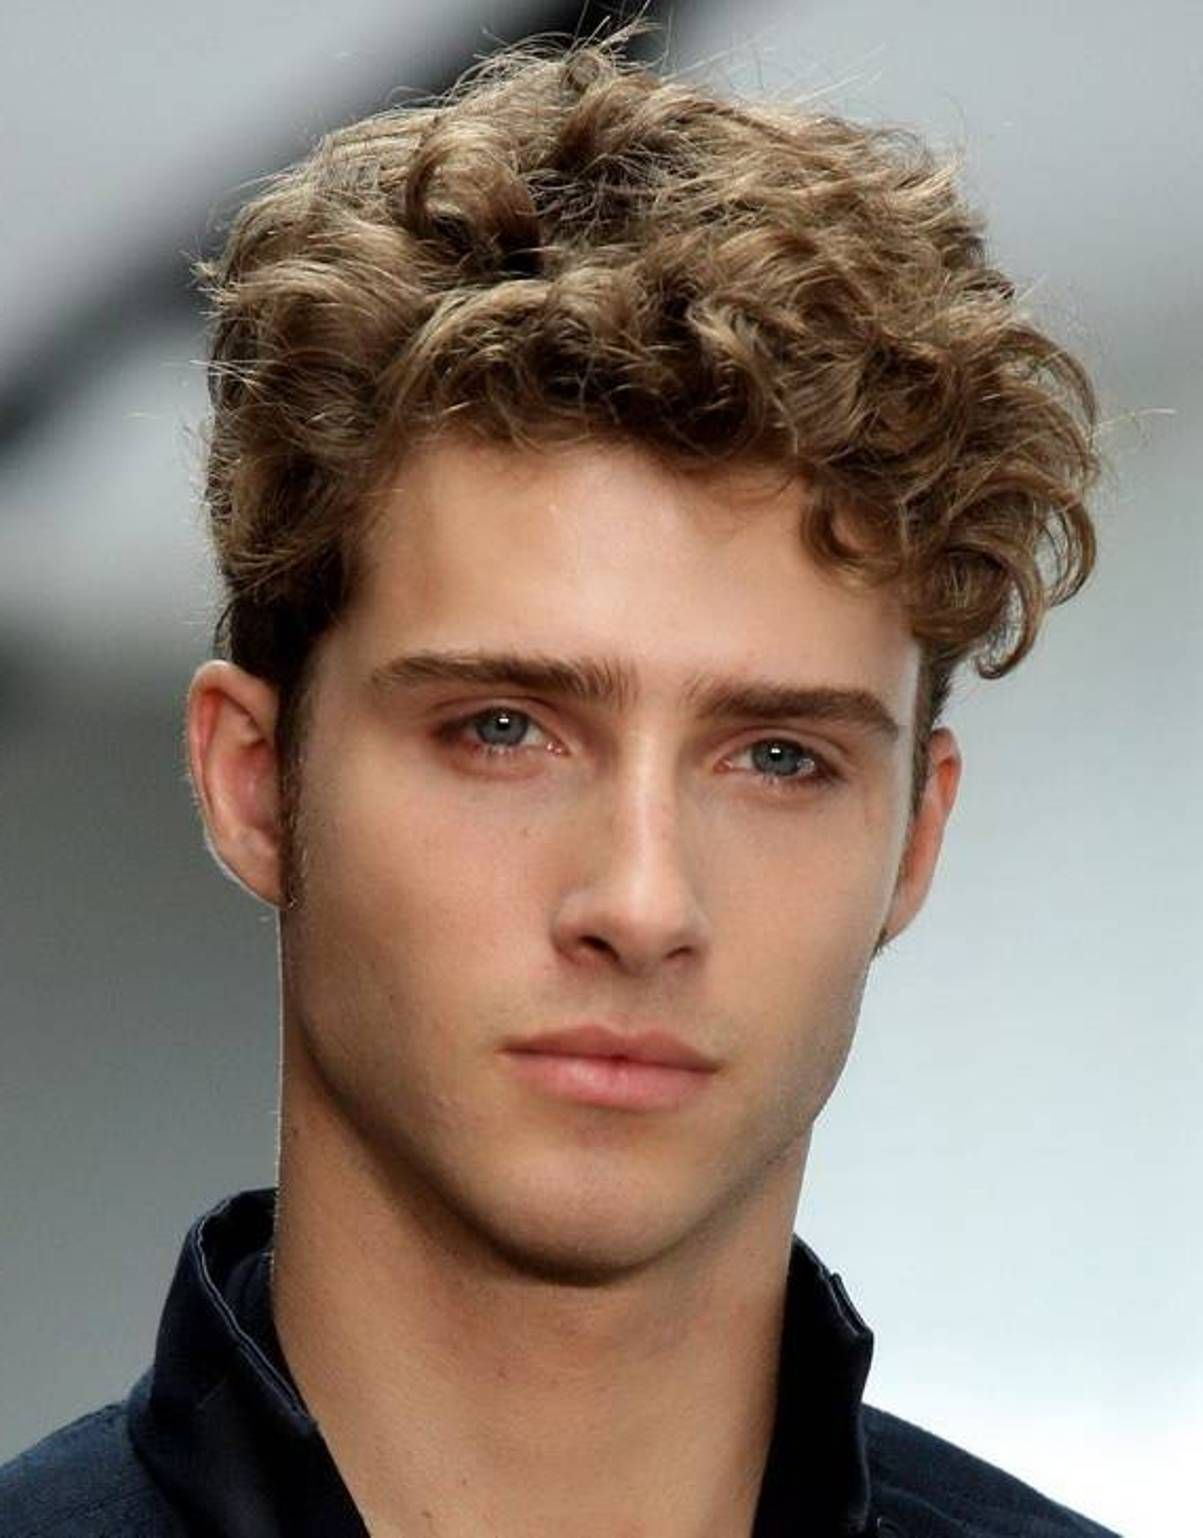 Curly Hairstyles Men Magnificent Size Matters 60's Hair Trends That Rocked The Nation  Hair Styles